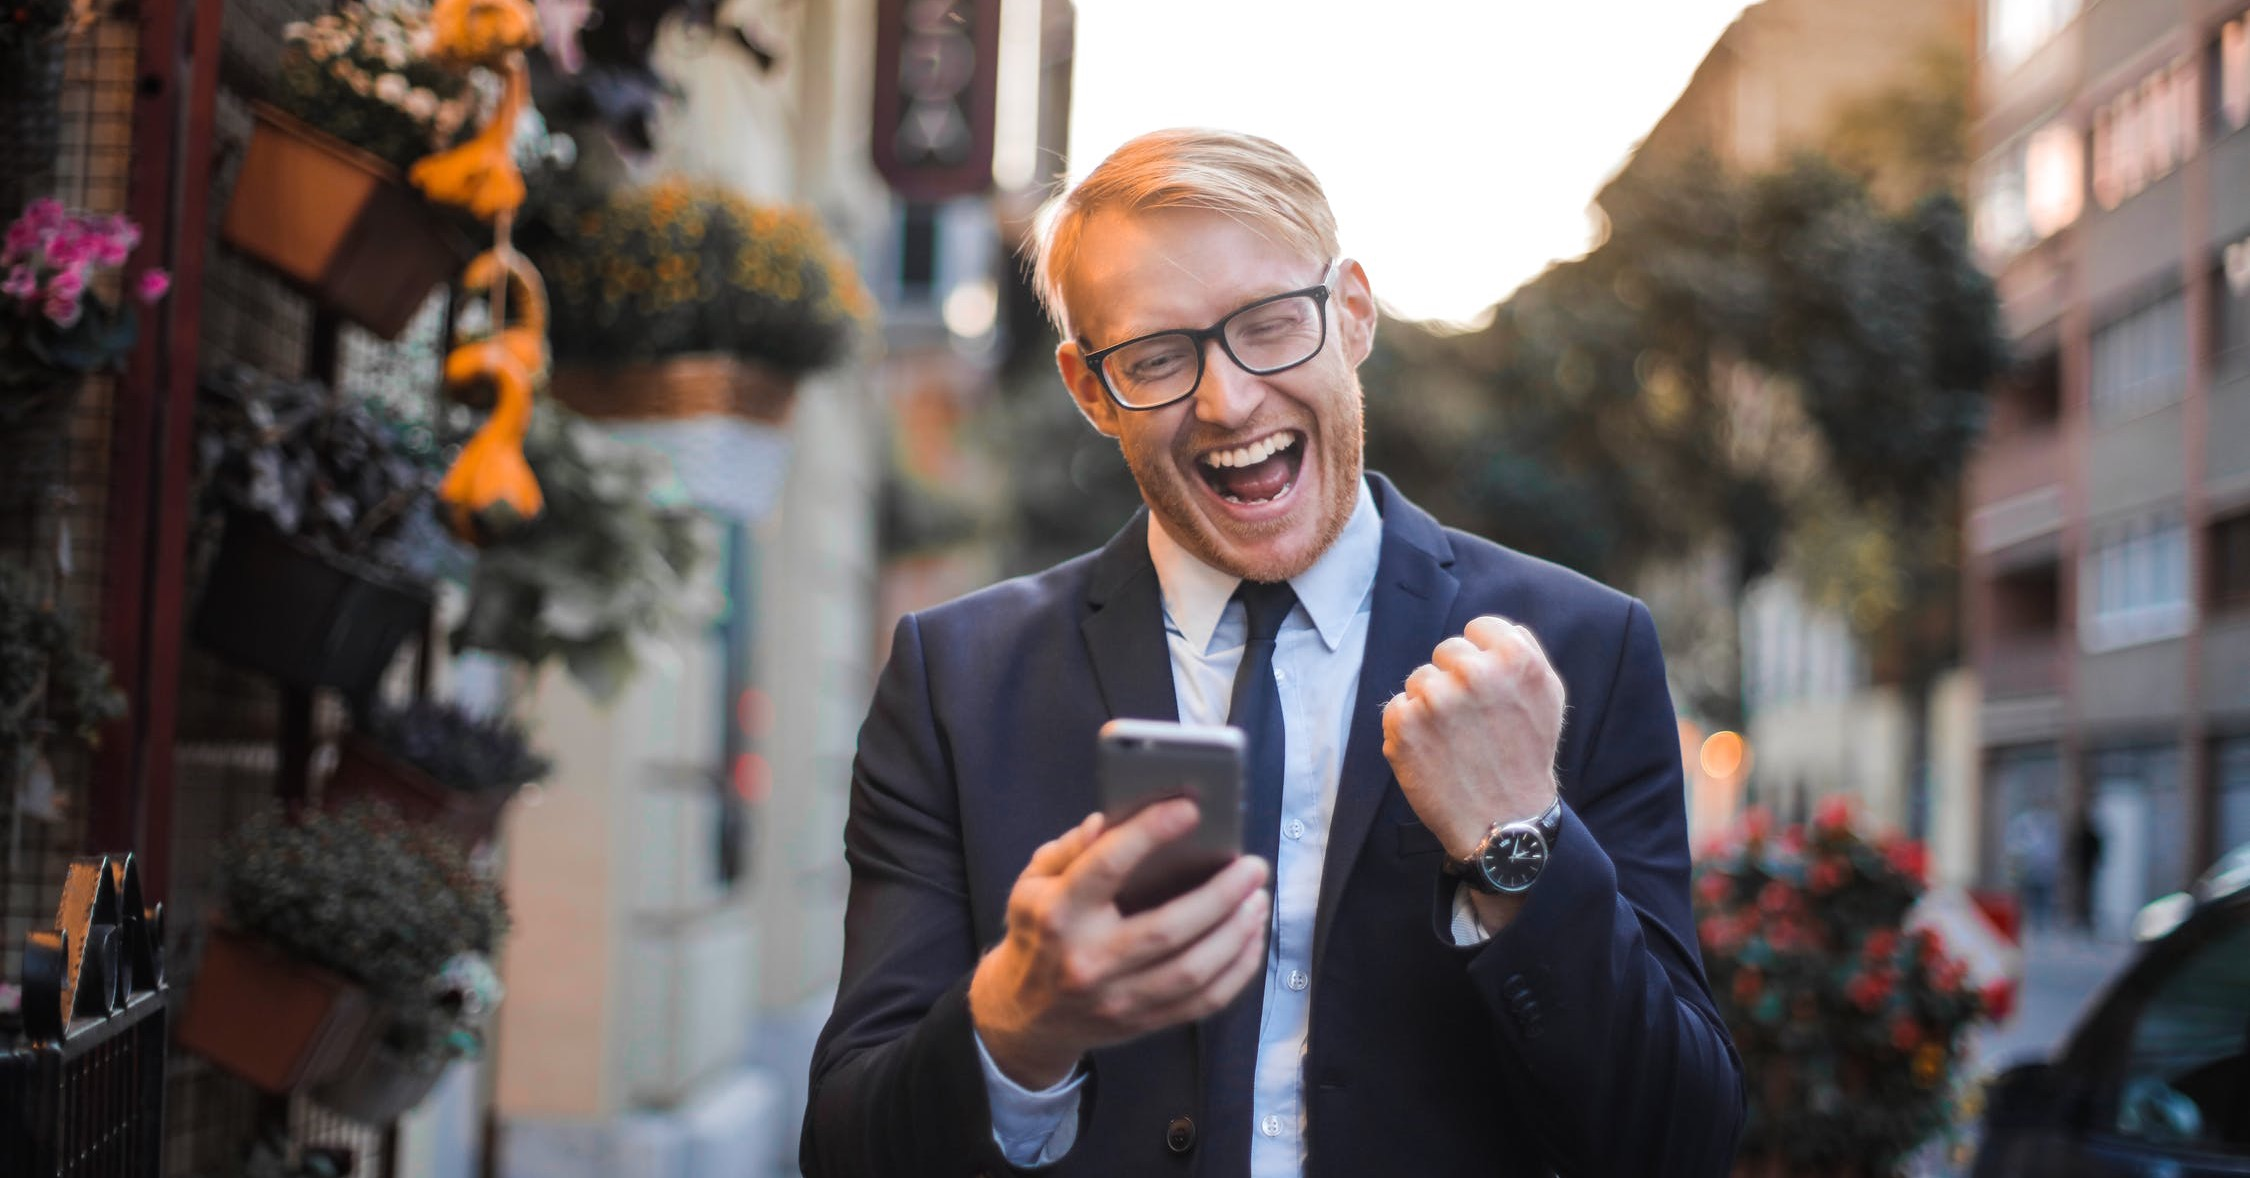 Happy man with mobile phone